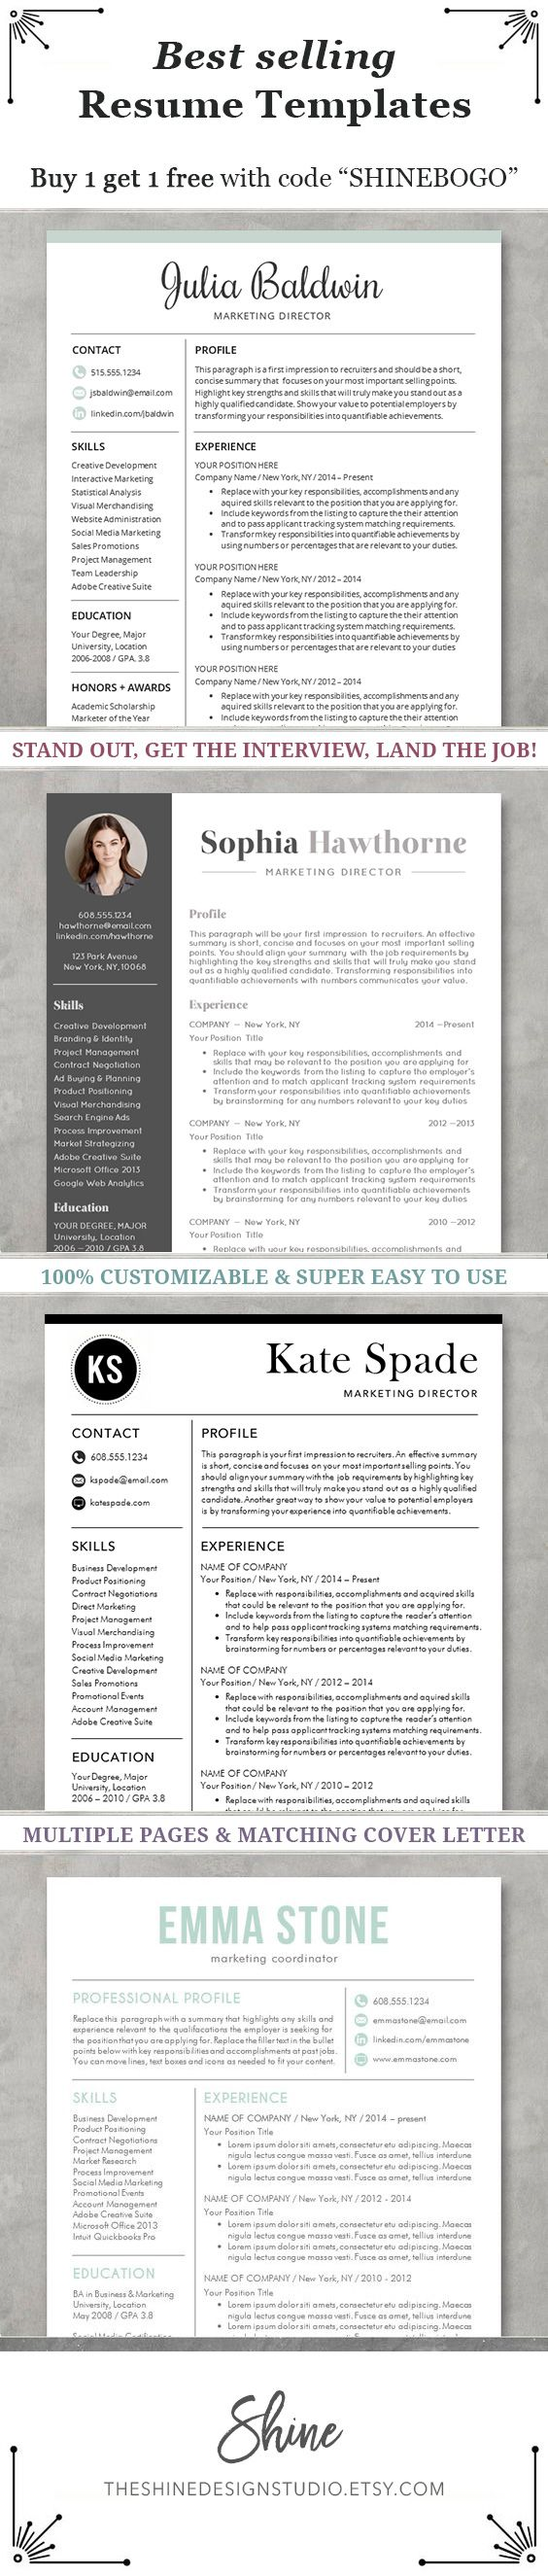 25 unique resume templates ideas on pinterest resume resume ideas and modern resume